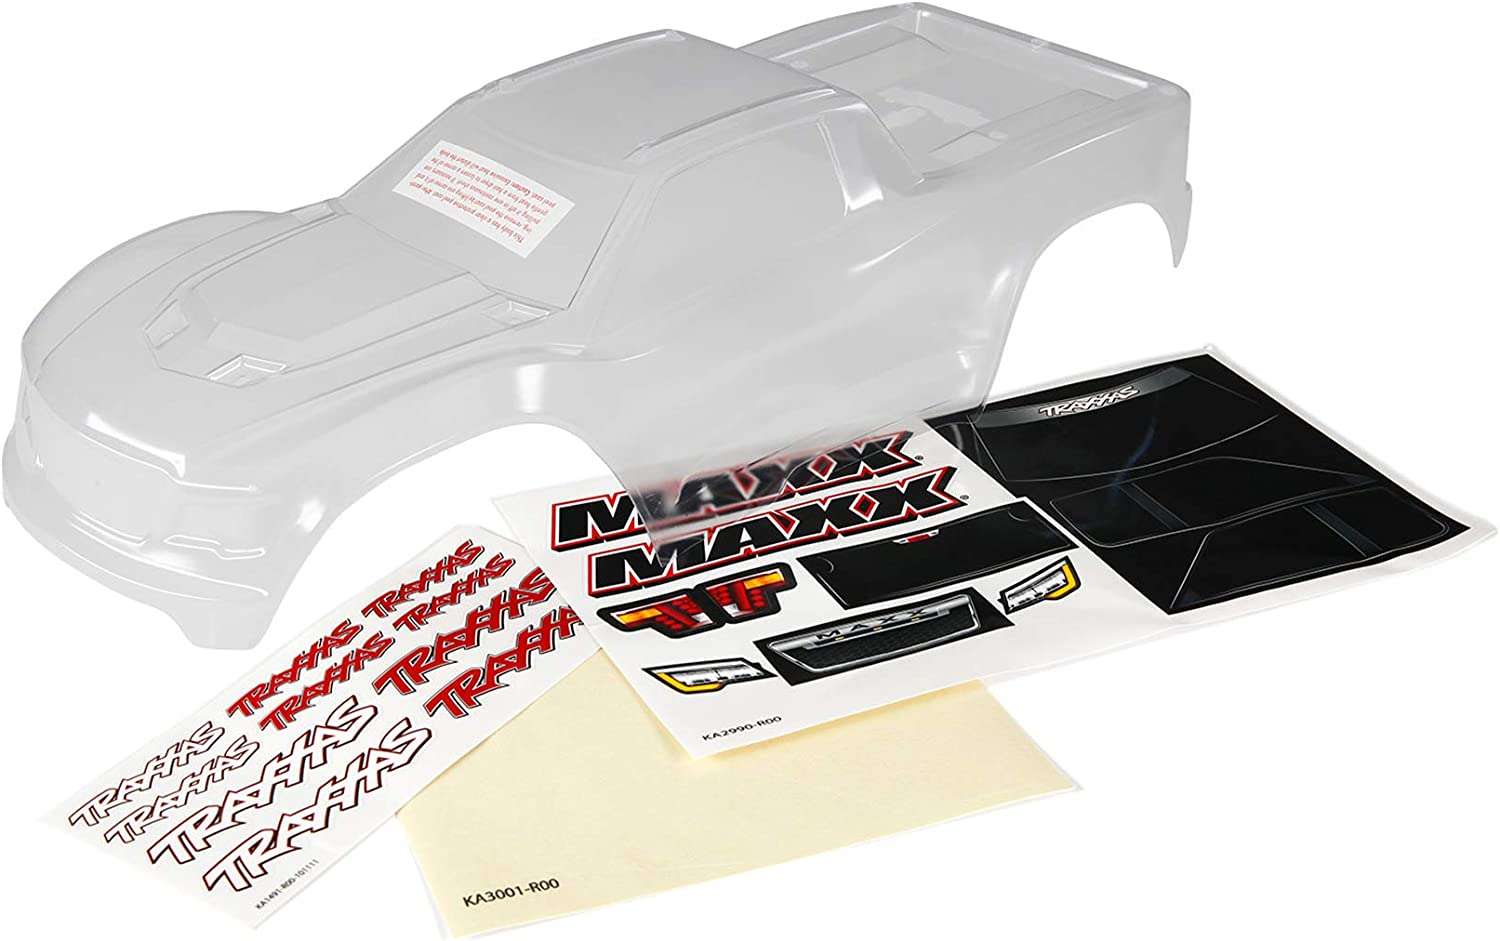 Maxx Heavy Duty Traxxas 8914 Body Clear, Untrimmed, Req Painting //Masks/&Decals